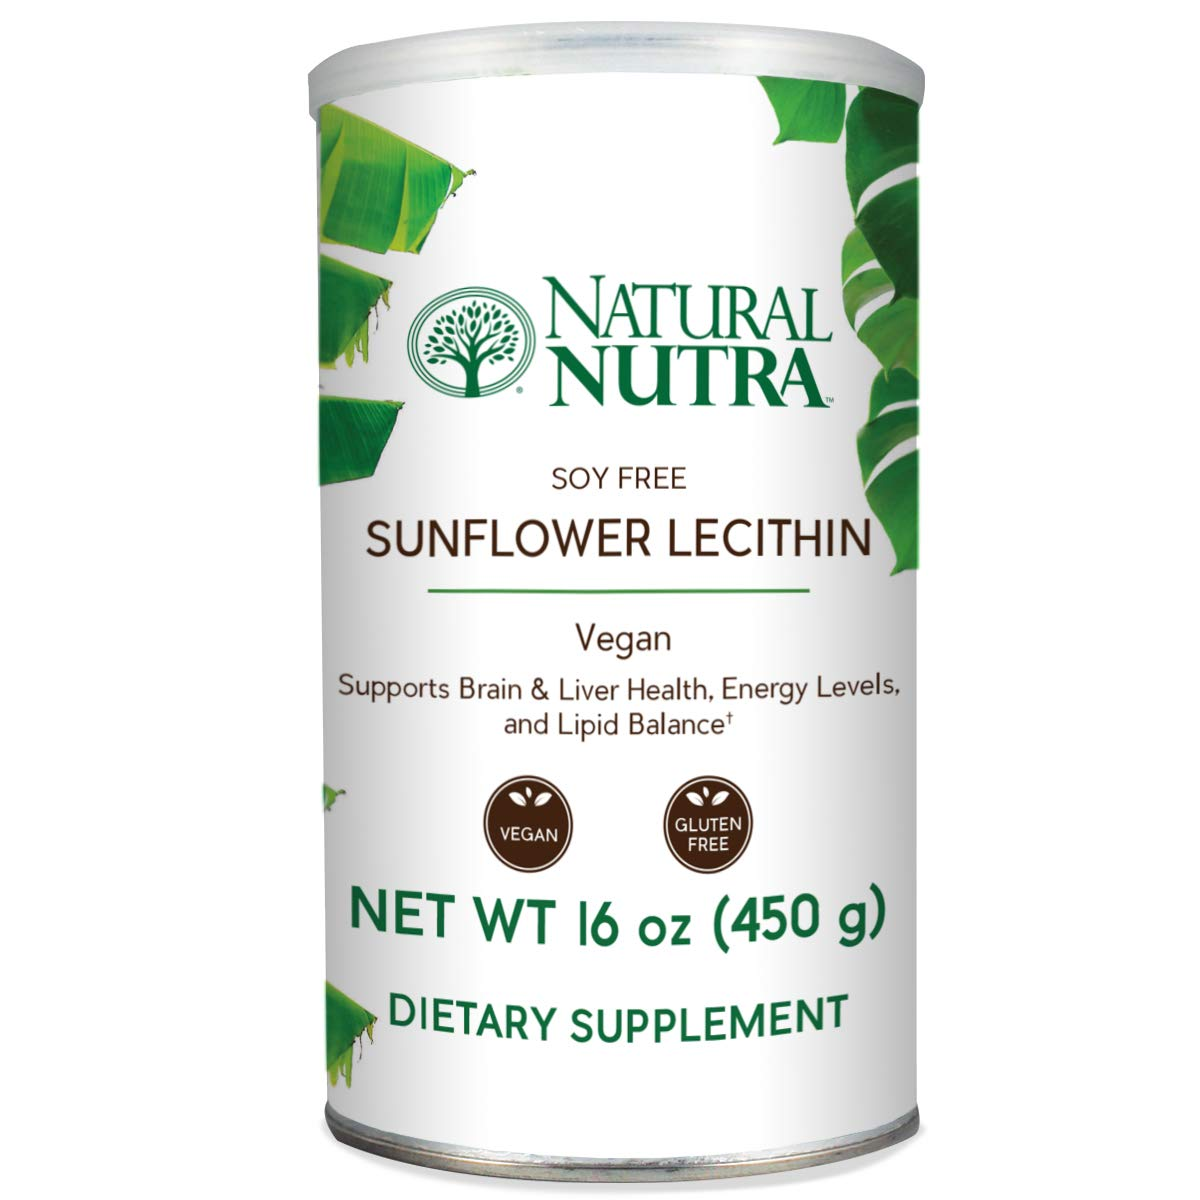 Natural Nutra Sunflower Lecithin Powder, Soy Free with Inositol, Omega 3-6 and Choline, 16 oz Vegan Supplement